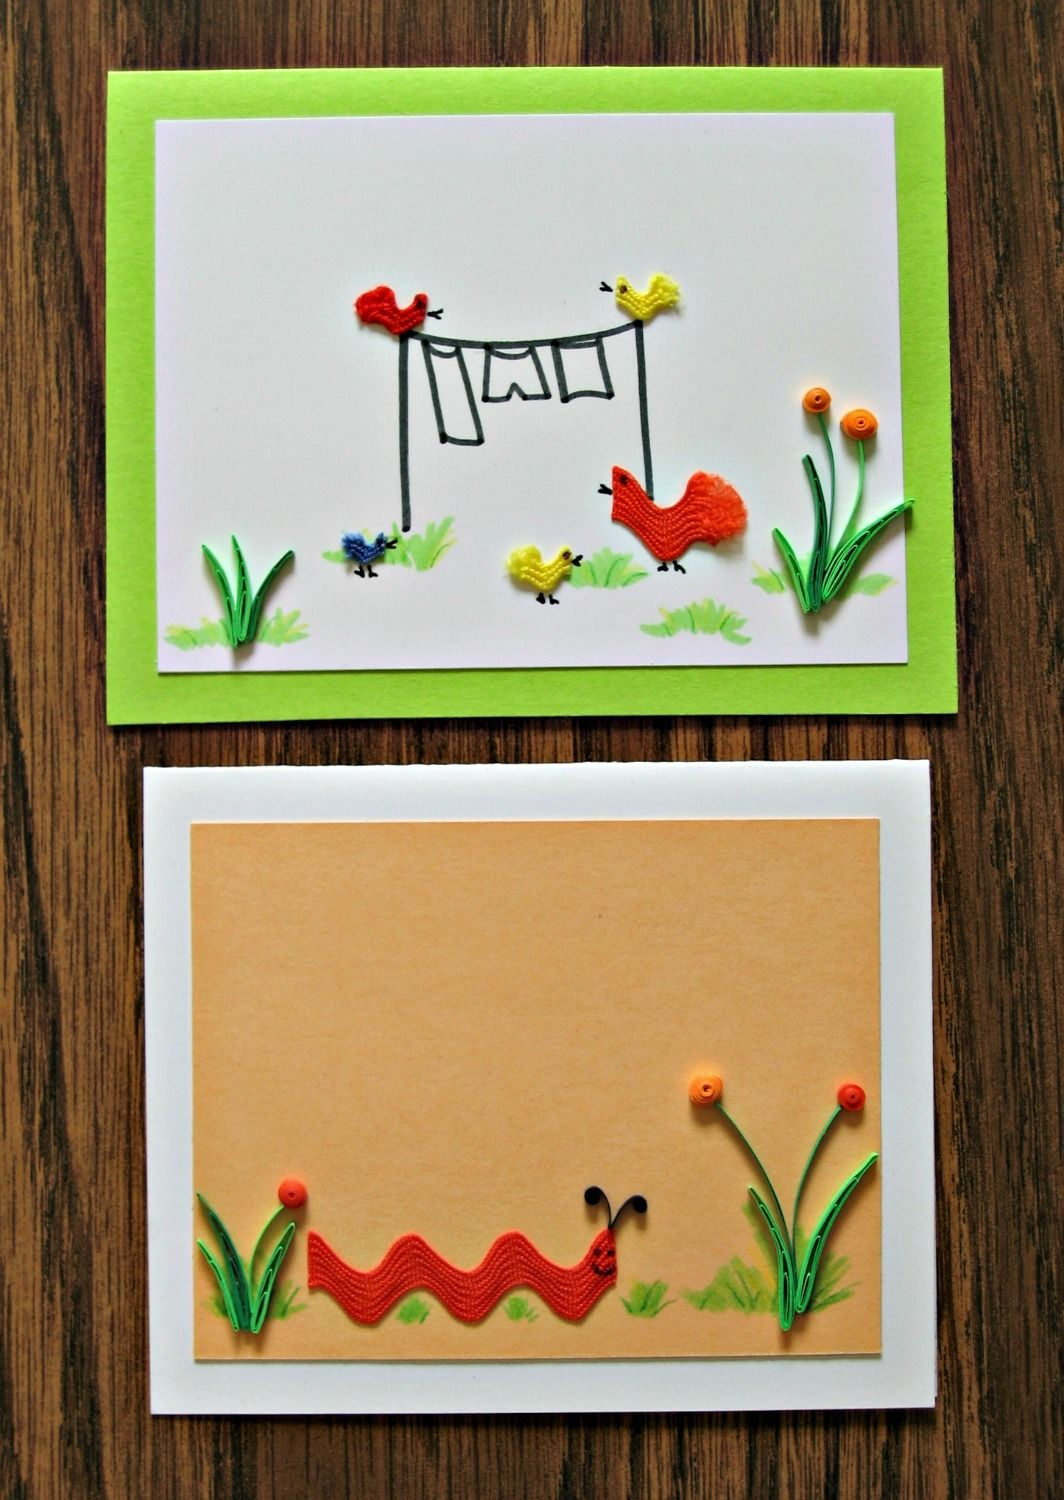 Ideas and tips for making a series of springtime creature cards